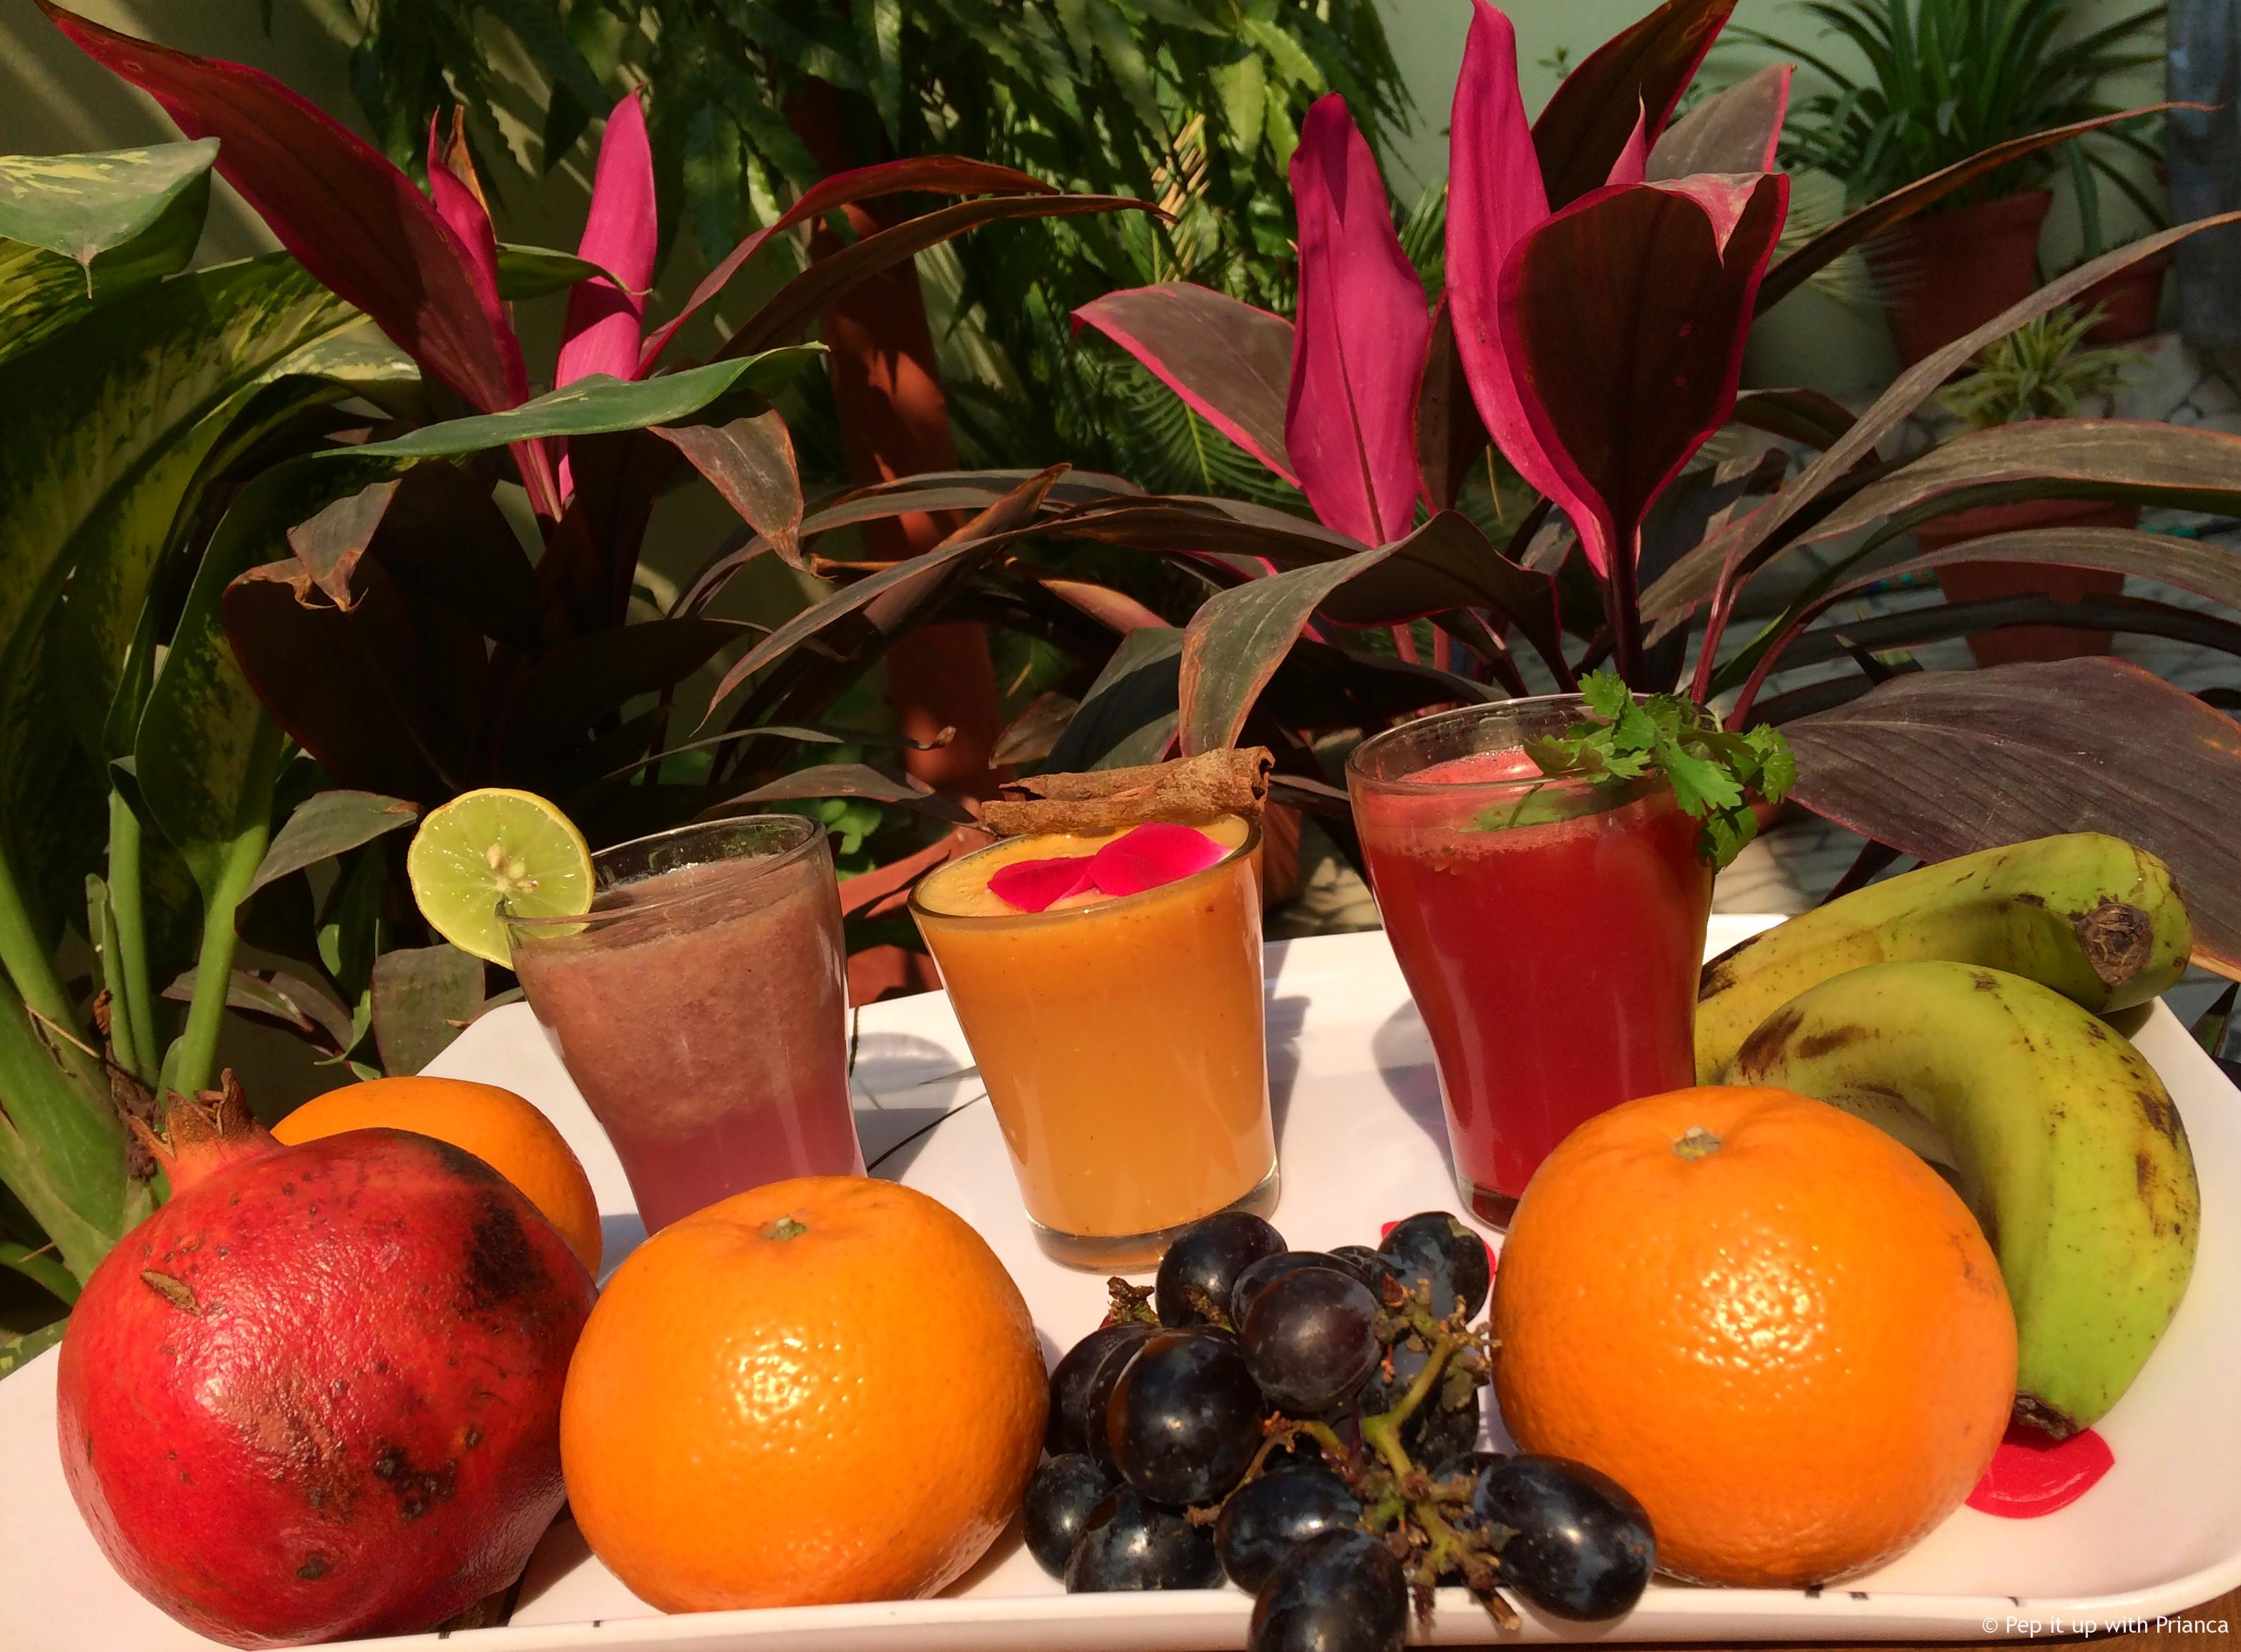 IMG 6428 - Beauty Cleanse, Detox and Instant Energy Juice Recipes - 3 Juice Recipes for a Healthy You!